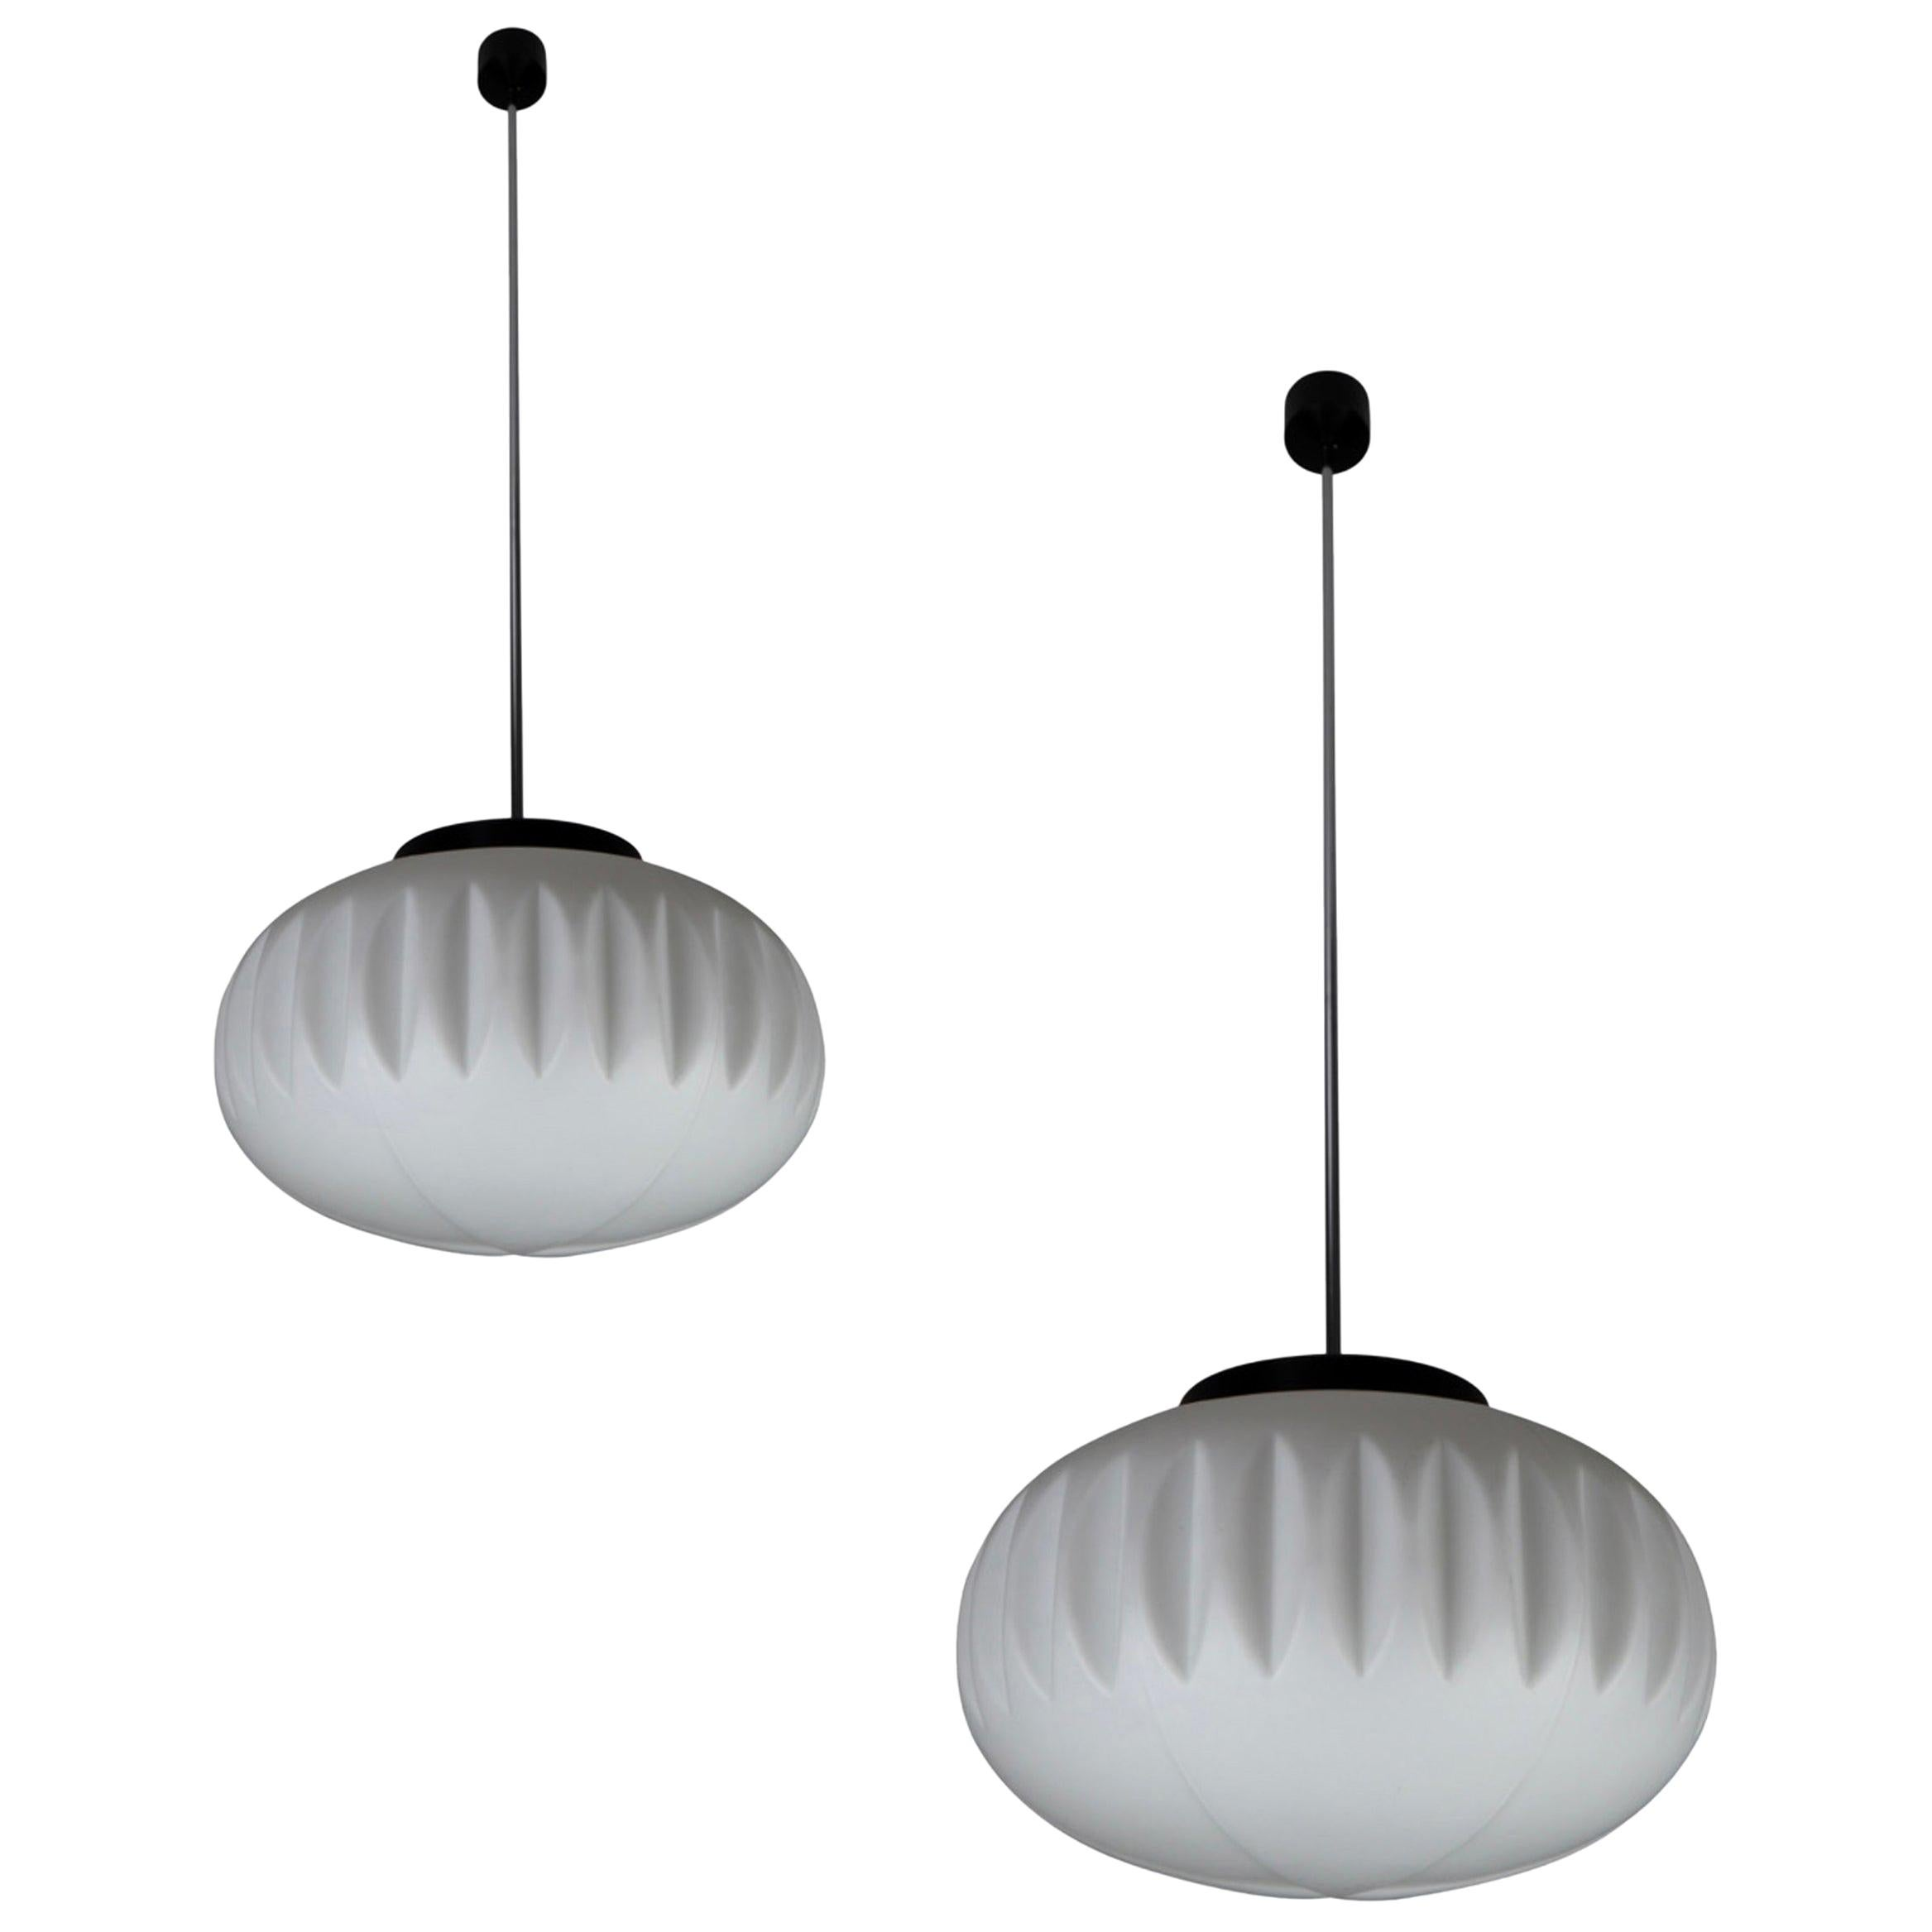 Large Midcentury Pendants, Structured Opaline Glass, Europe, 1960s